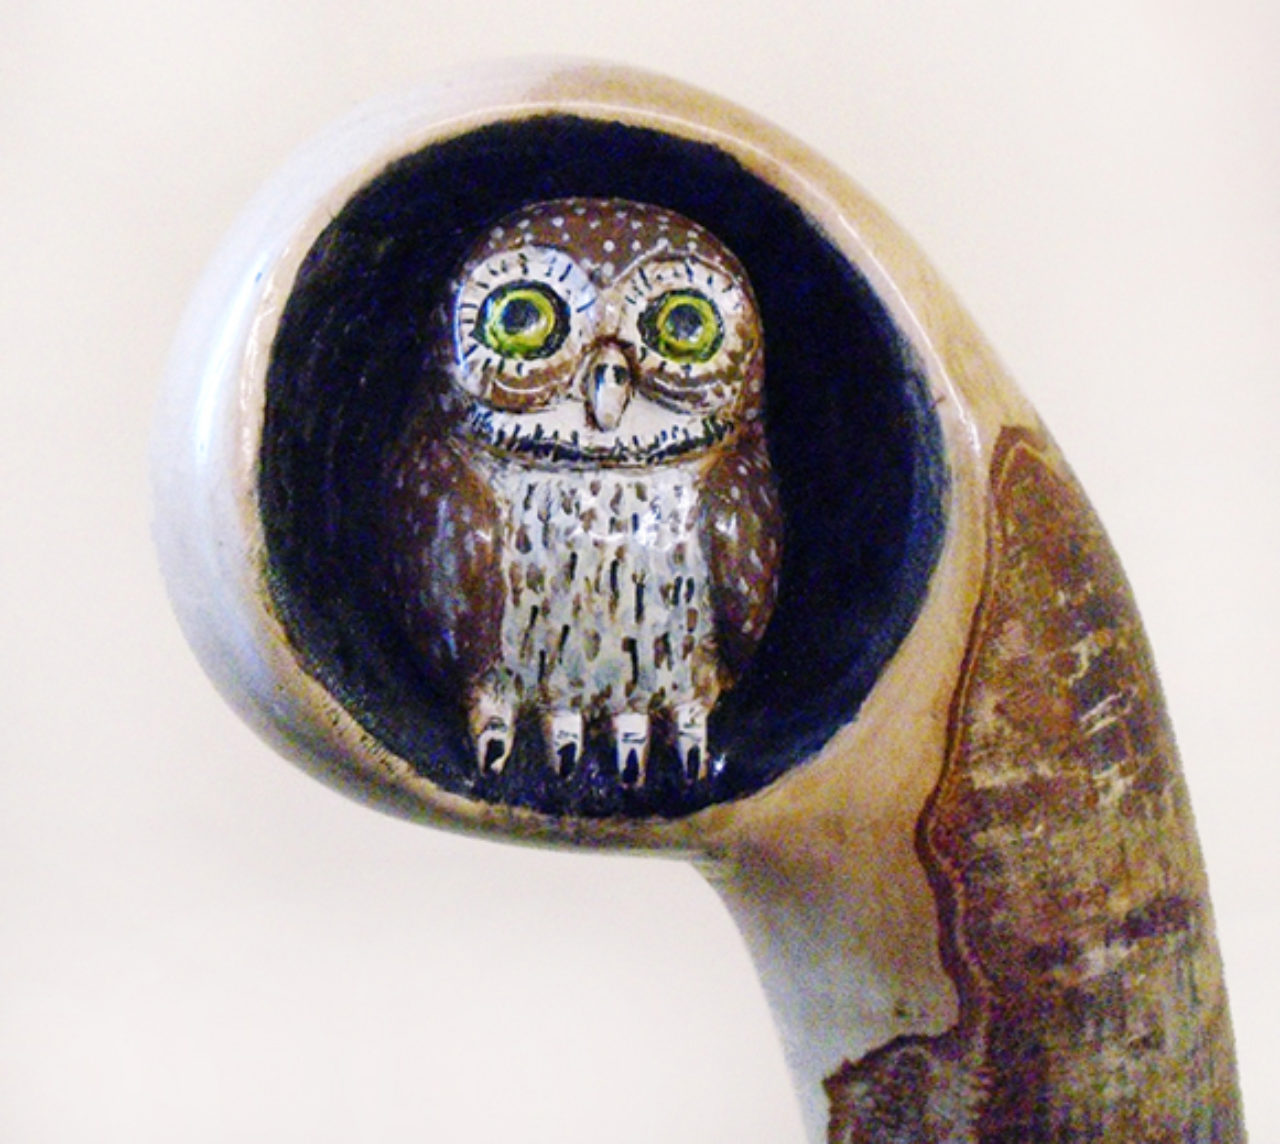 Robert Denton's handmade walking sticks are legendary for their craftsmanship. He takes extreme care with each element of design, as seen in this owl topper.